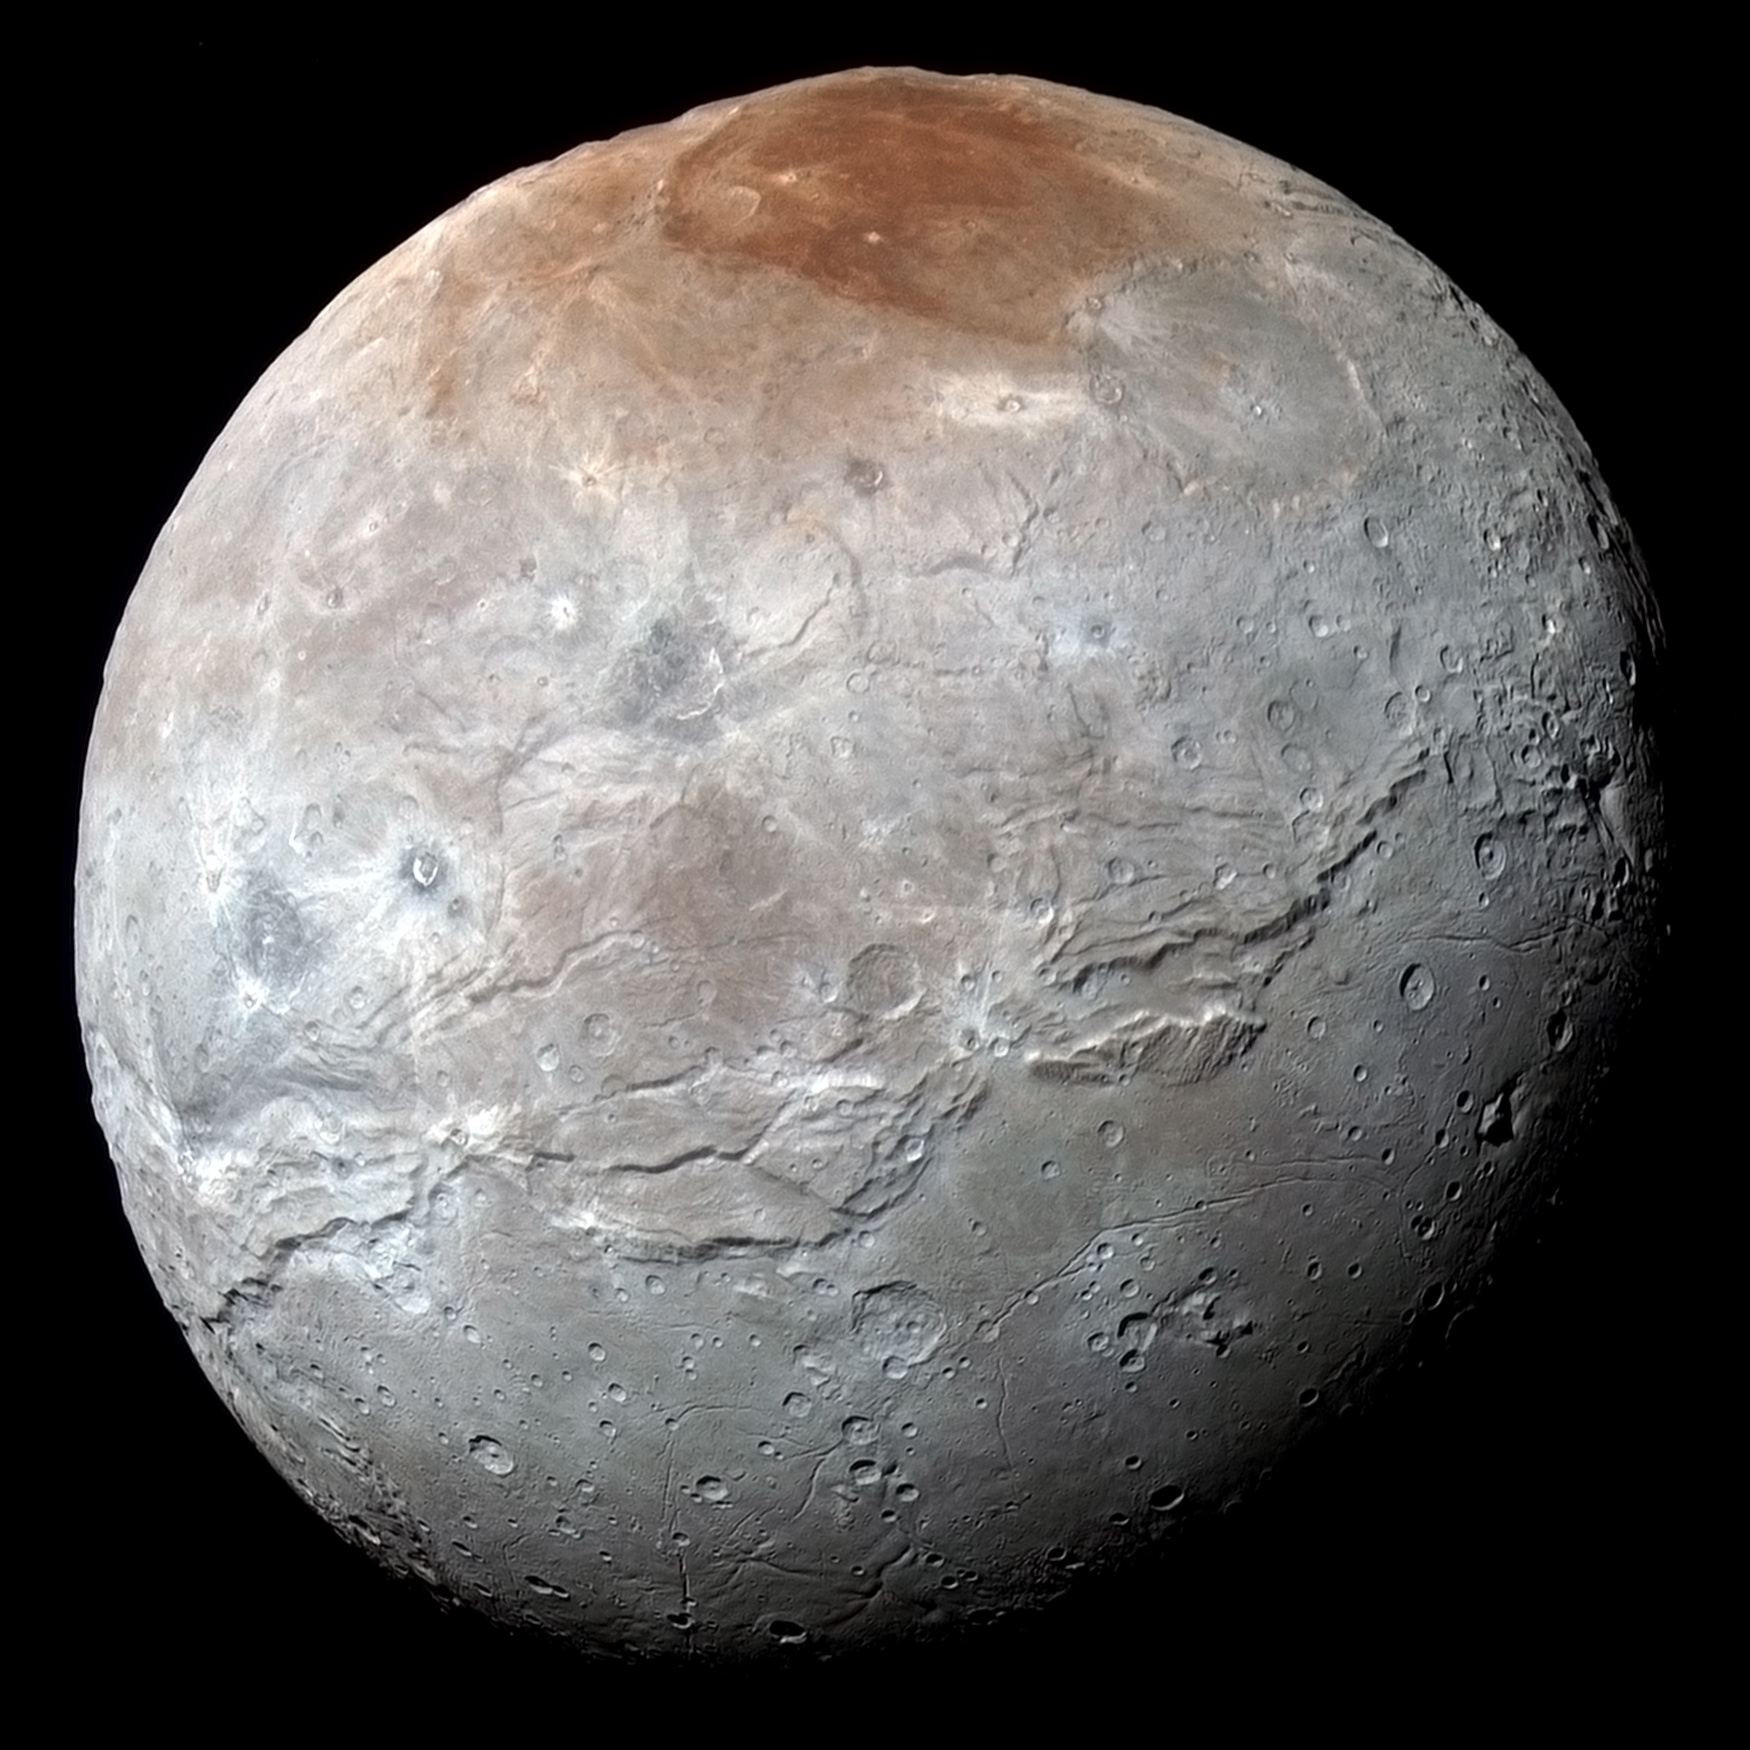 NASA's New Horizons captured this high-resolution enhanced colour view of Charon just before closest approach on 14 July 2015 and transmitted to Earth on 21 September. The image combines blue, red and infrared images taken by the spacecraft's Ralph/Multispectral Visual Imaging Camera (MVIC); the colours are processed to best highlight the variation of surface properties across Charon. Charon's colour palette is not as diverse as Pluto's; most striking is the reddish north (top) polar region, informally named Mordor Macula. Charon is 754 miles (1,214 kilometres) across; this image resolves details as small as 1.8 miles (2.9 kilometres). Image credit: NASA/Johns Hopkins University Applied Physics Laboratory/Southwest Research Institute.